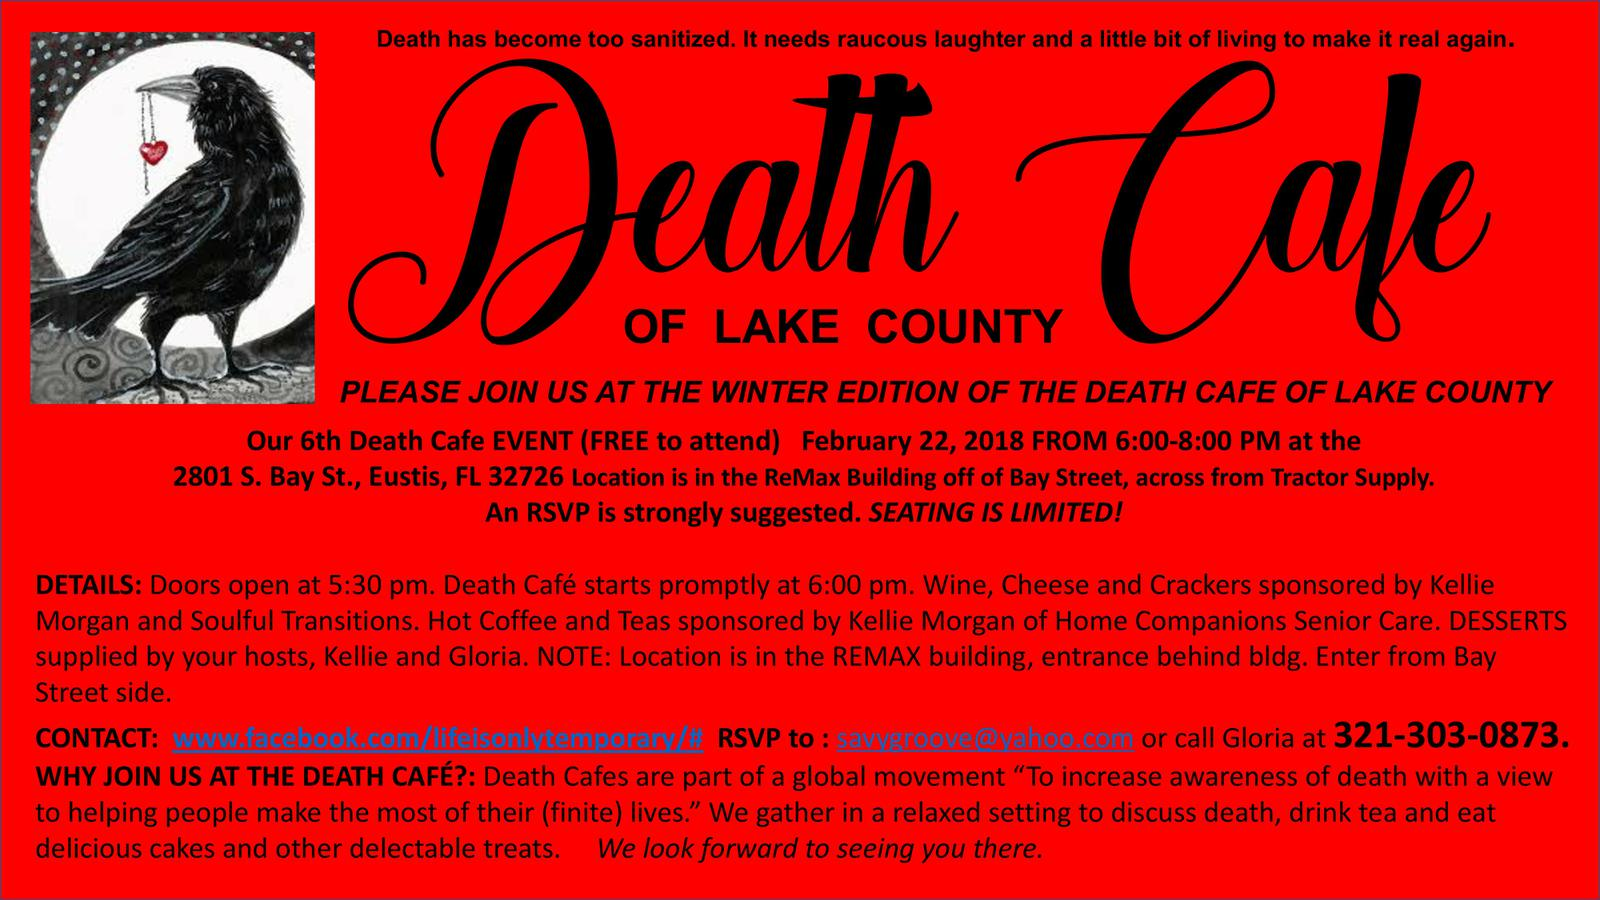 Death Cafe of Lake County Winter Edition